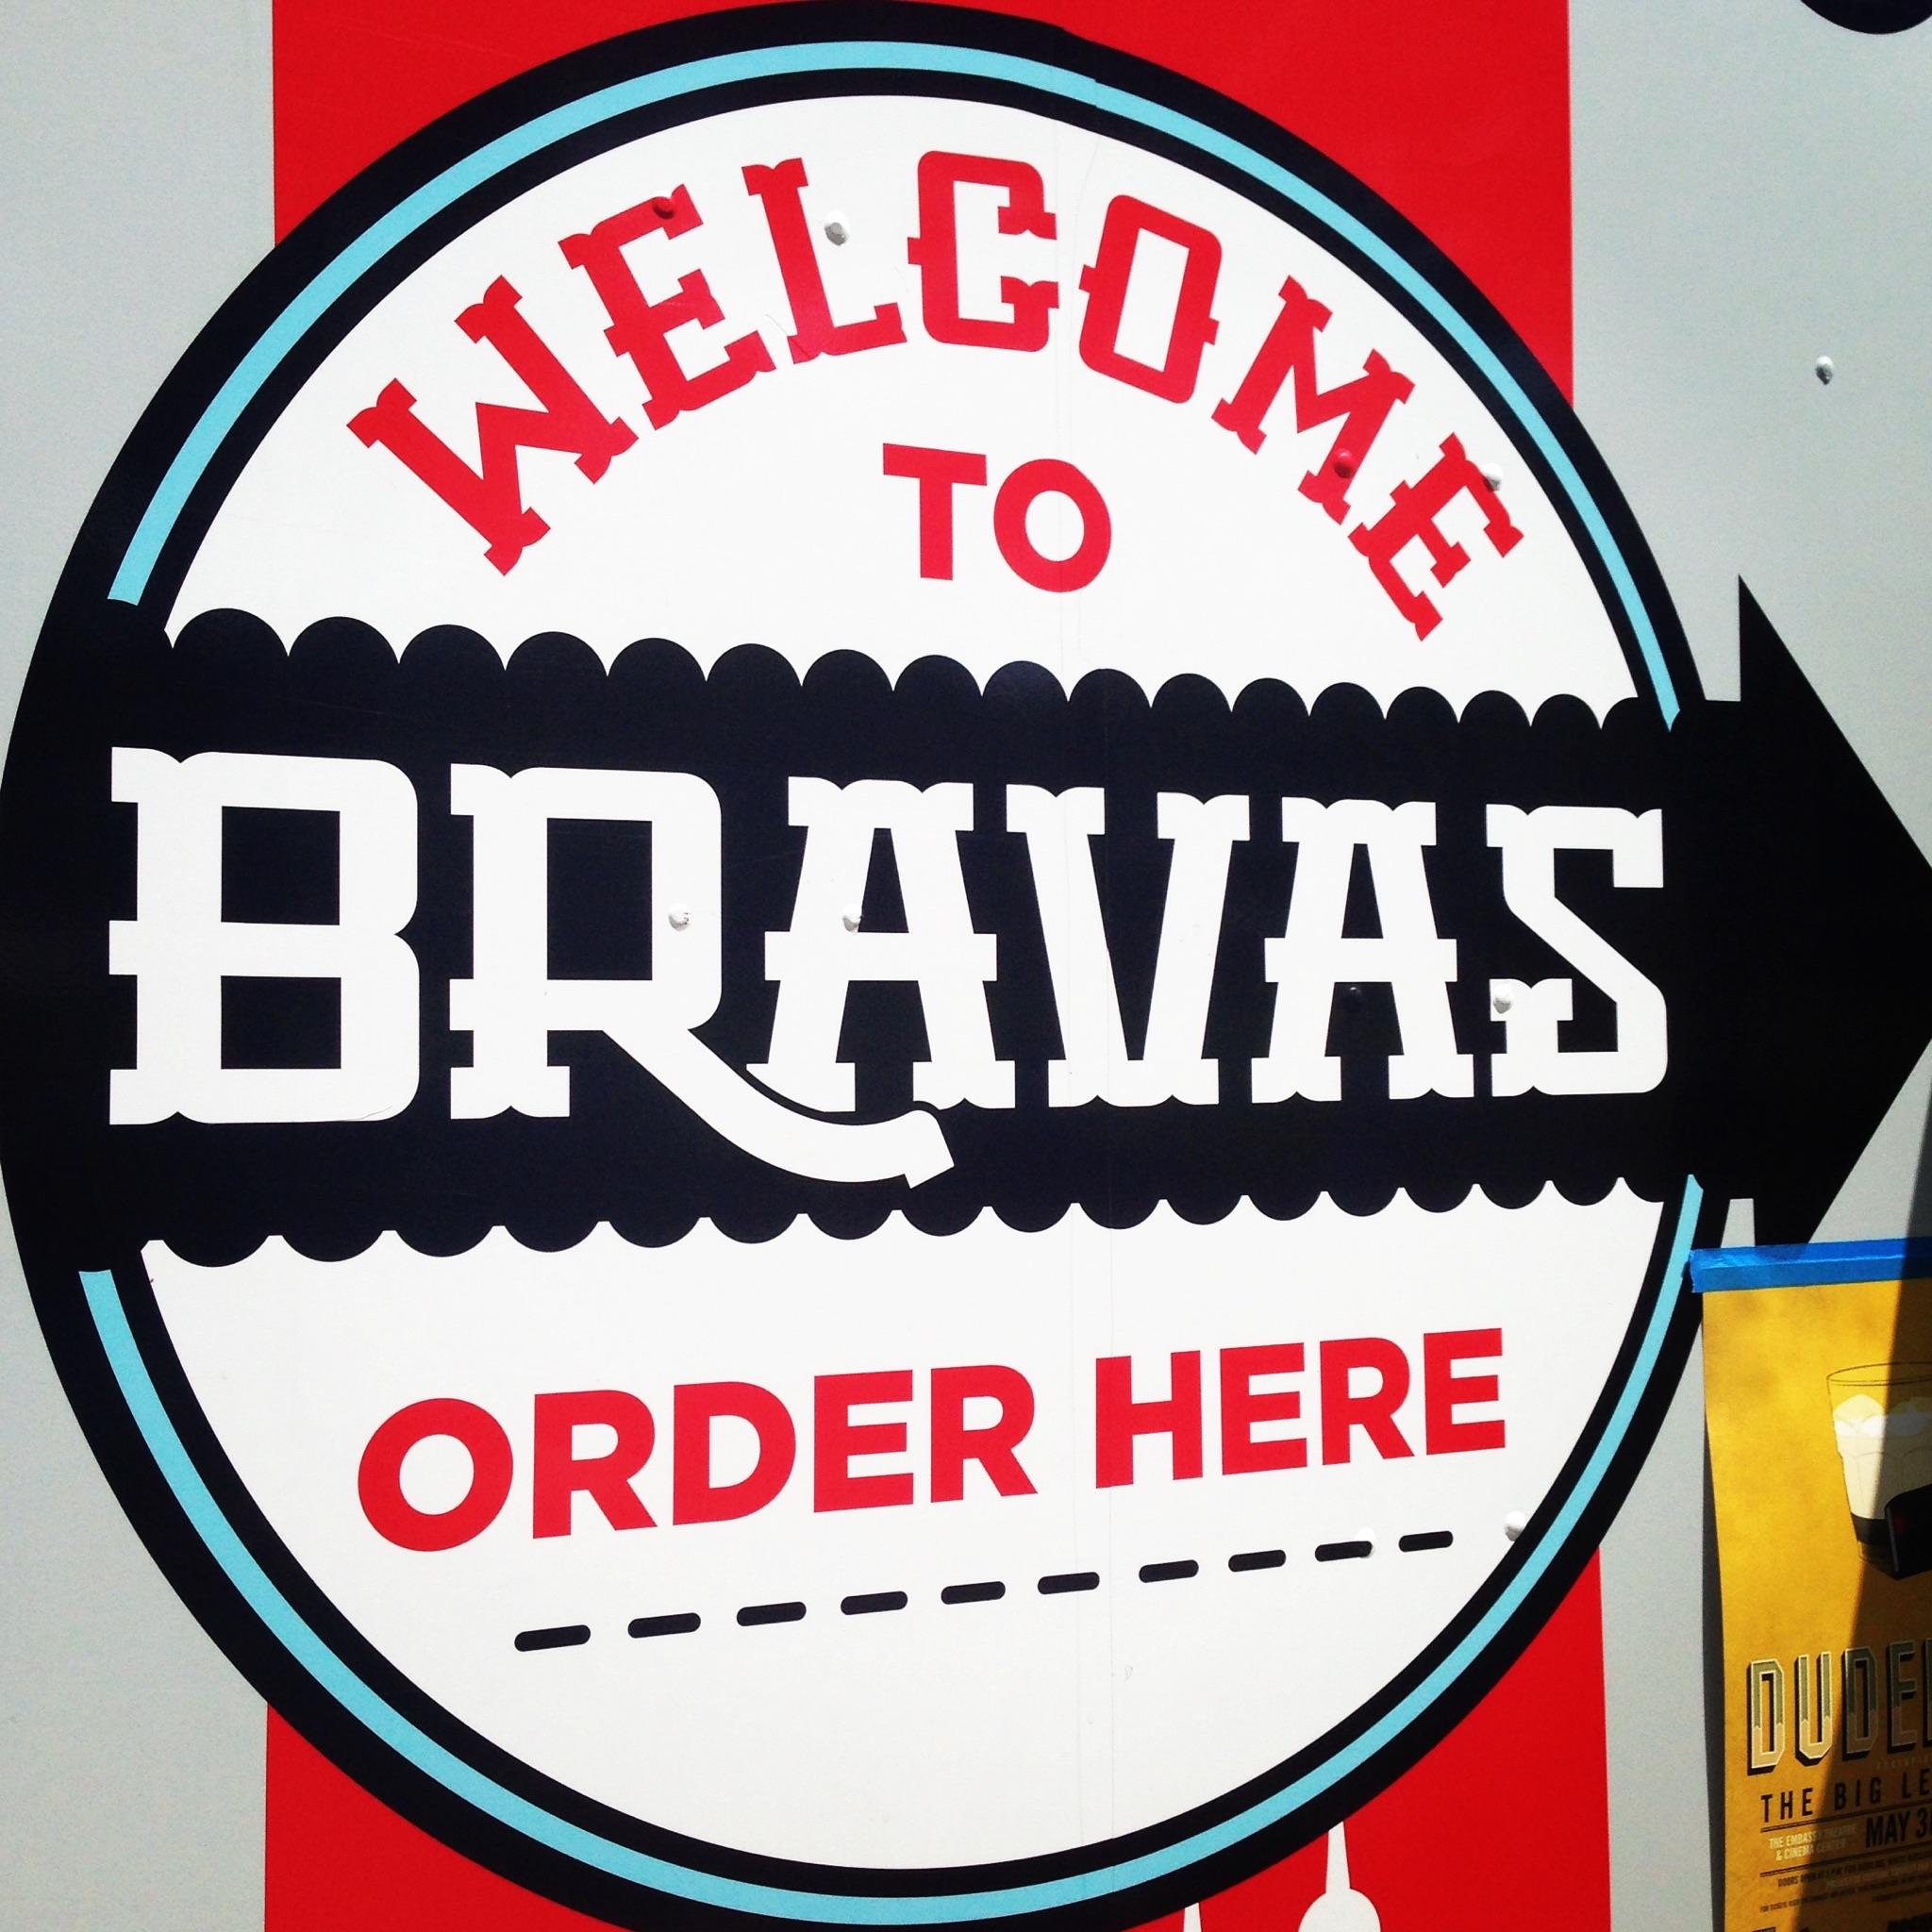 Bravas brings their gourmet hot dog food truck, as well as their hot dog cart, to Lunch on the Plaza - a fan favorite!